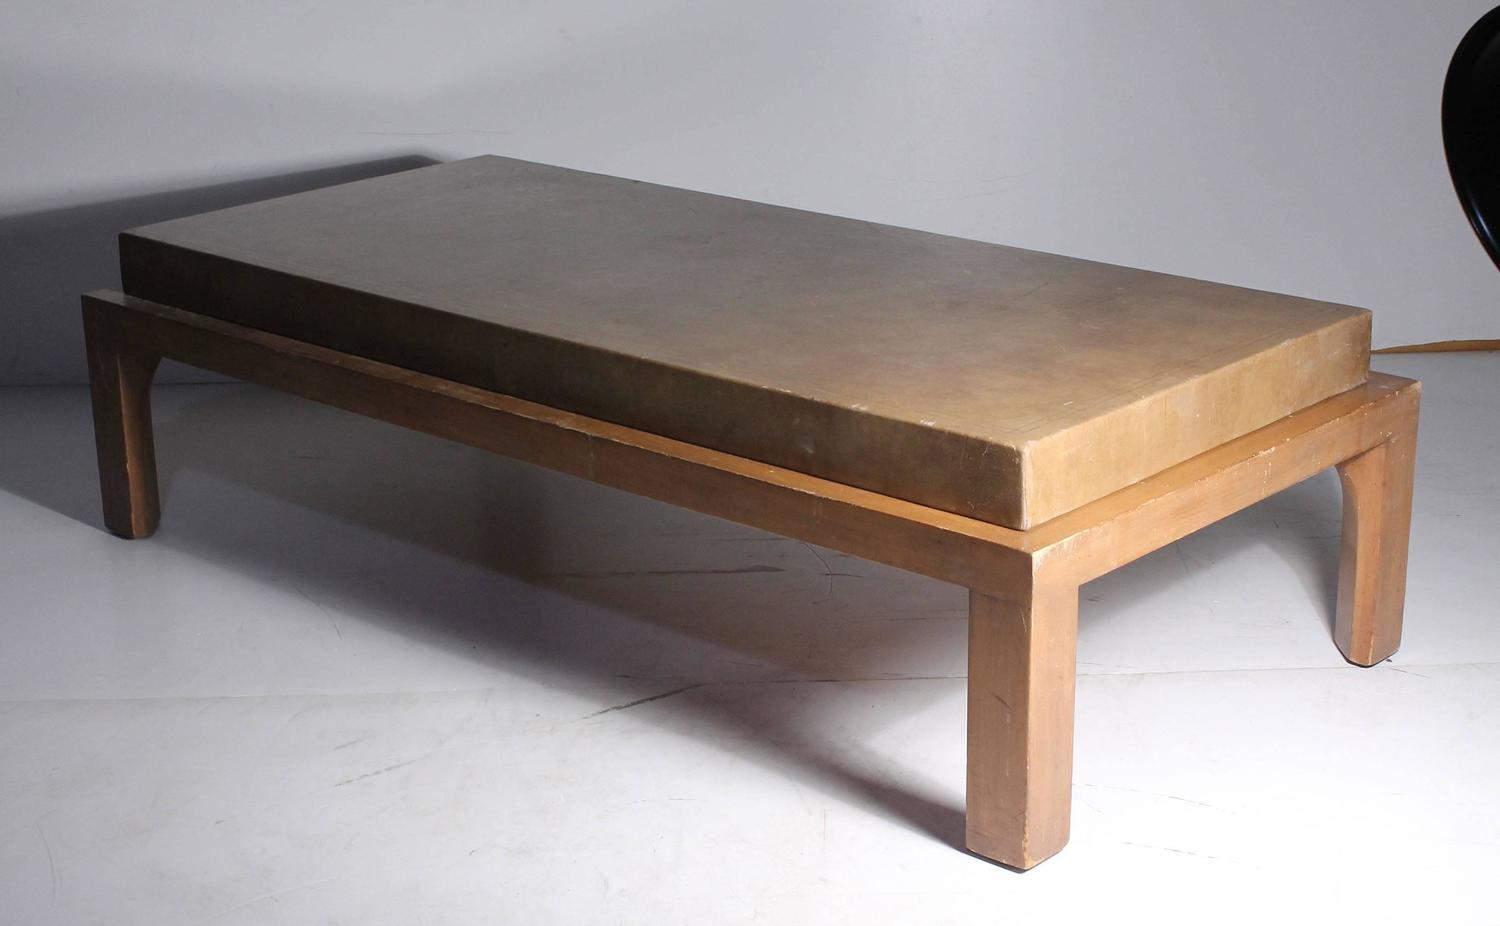 Vintage Leather Wrapped Coffee Table In Manner Of Tommi Parzinger For Sale At 1stdibs